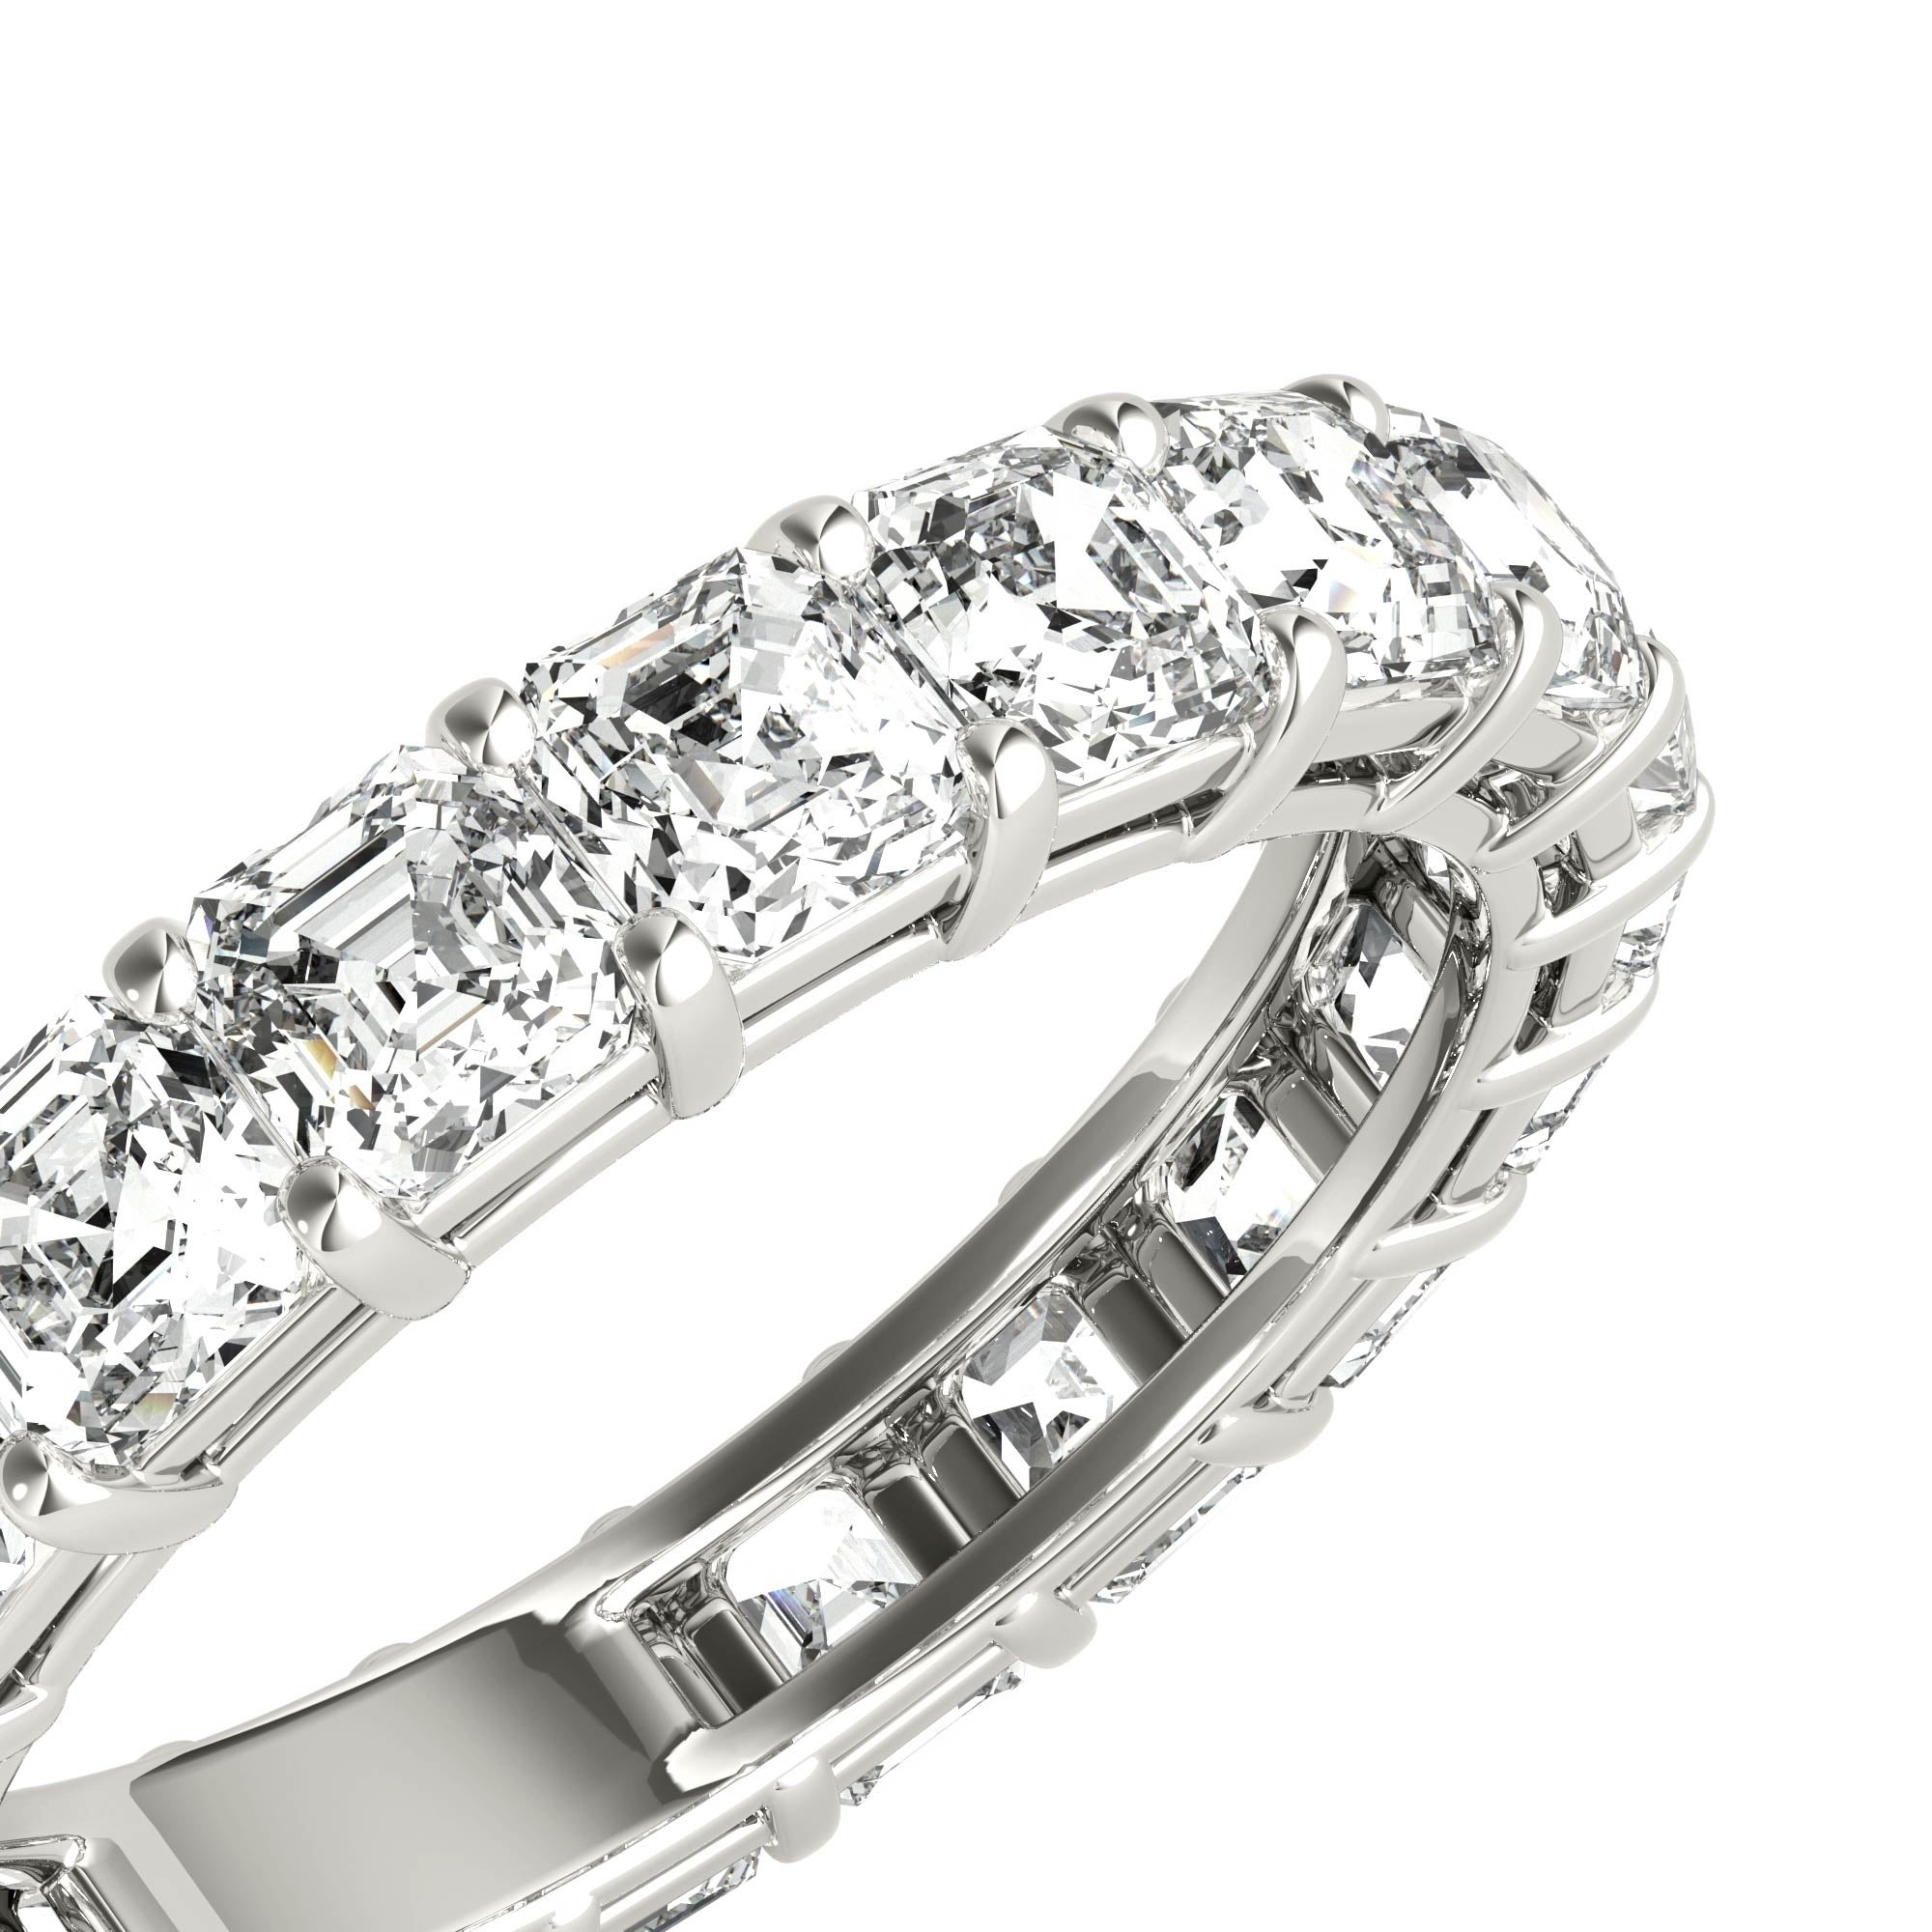 certified baguettes engagement platinum jewellery ring campbelljewellers asscher cut campbell gia rings products diamond bespoke tapper